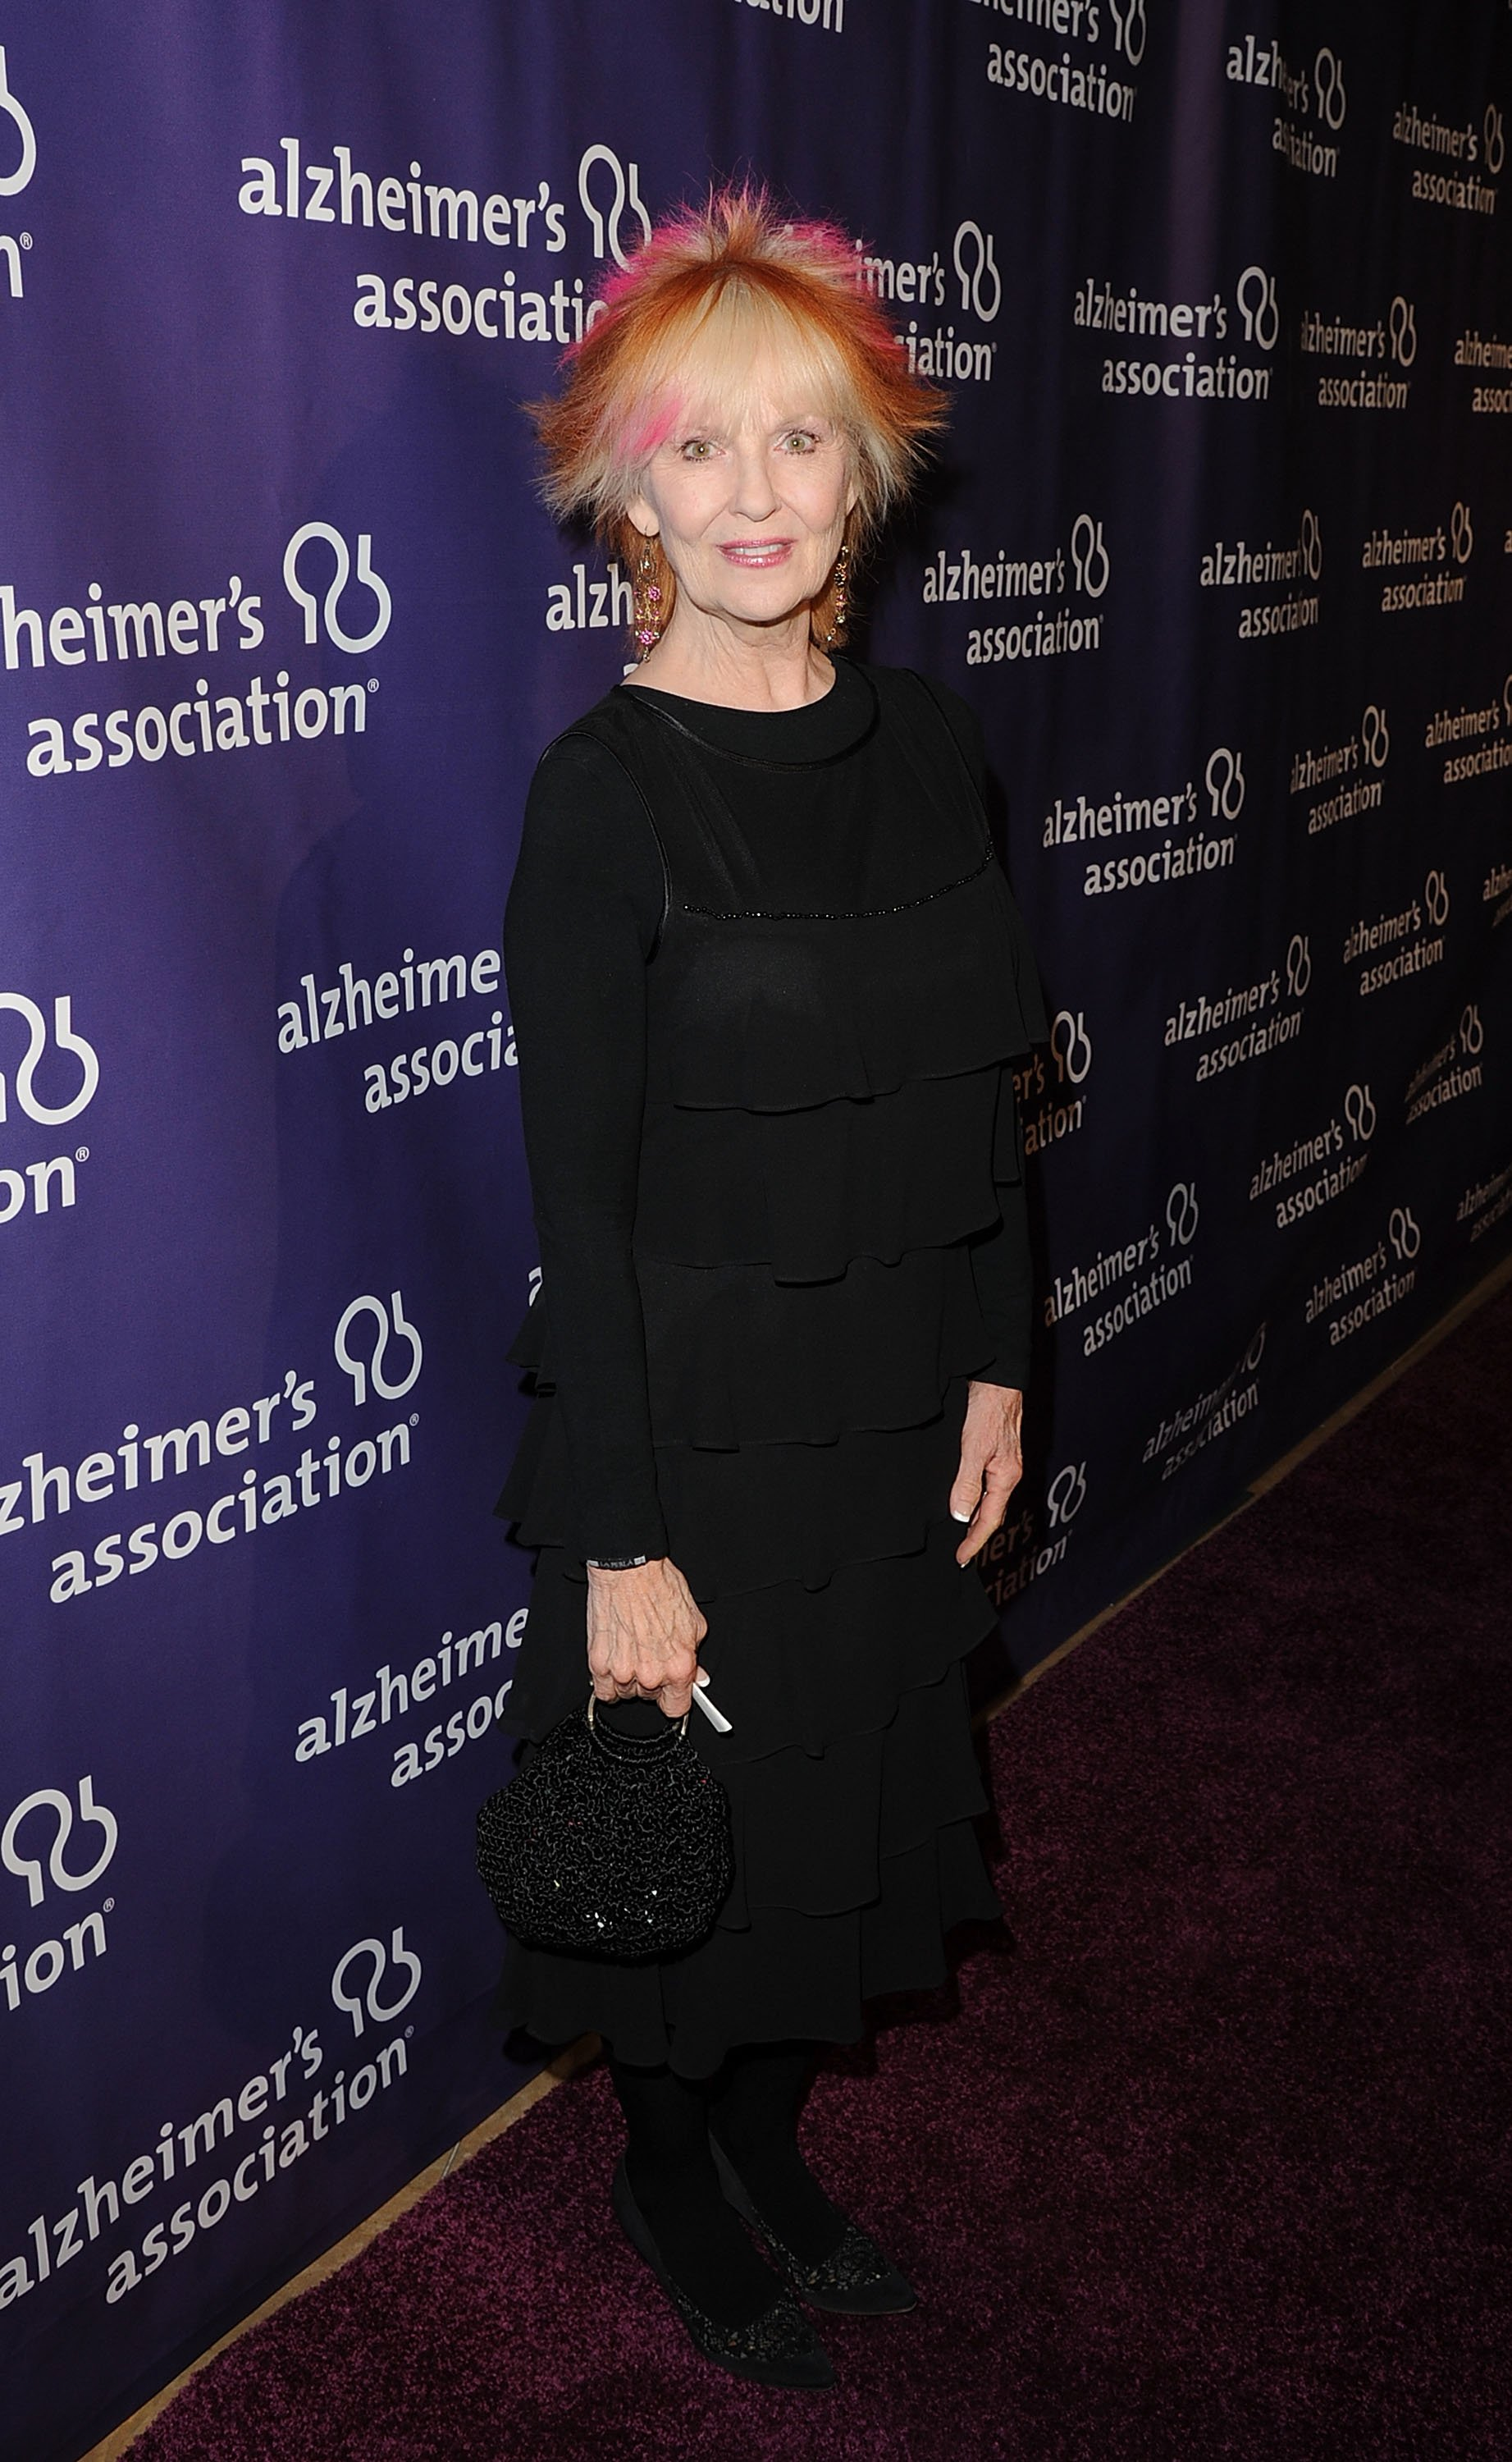 Shelley Fabares on March 21, 2012, in Beverly Hills, California | Photo: Getty Images/Global Images Ukraine